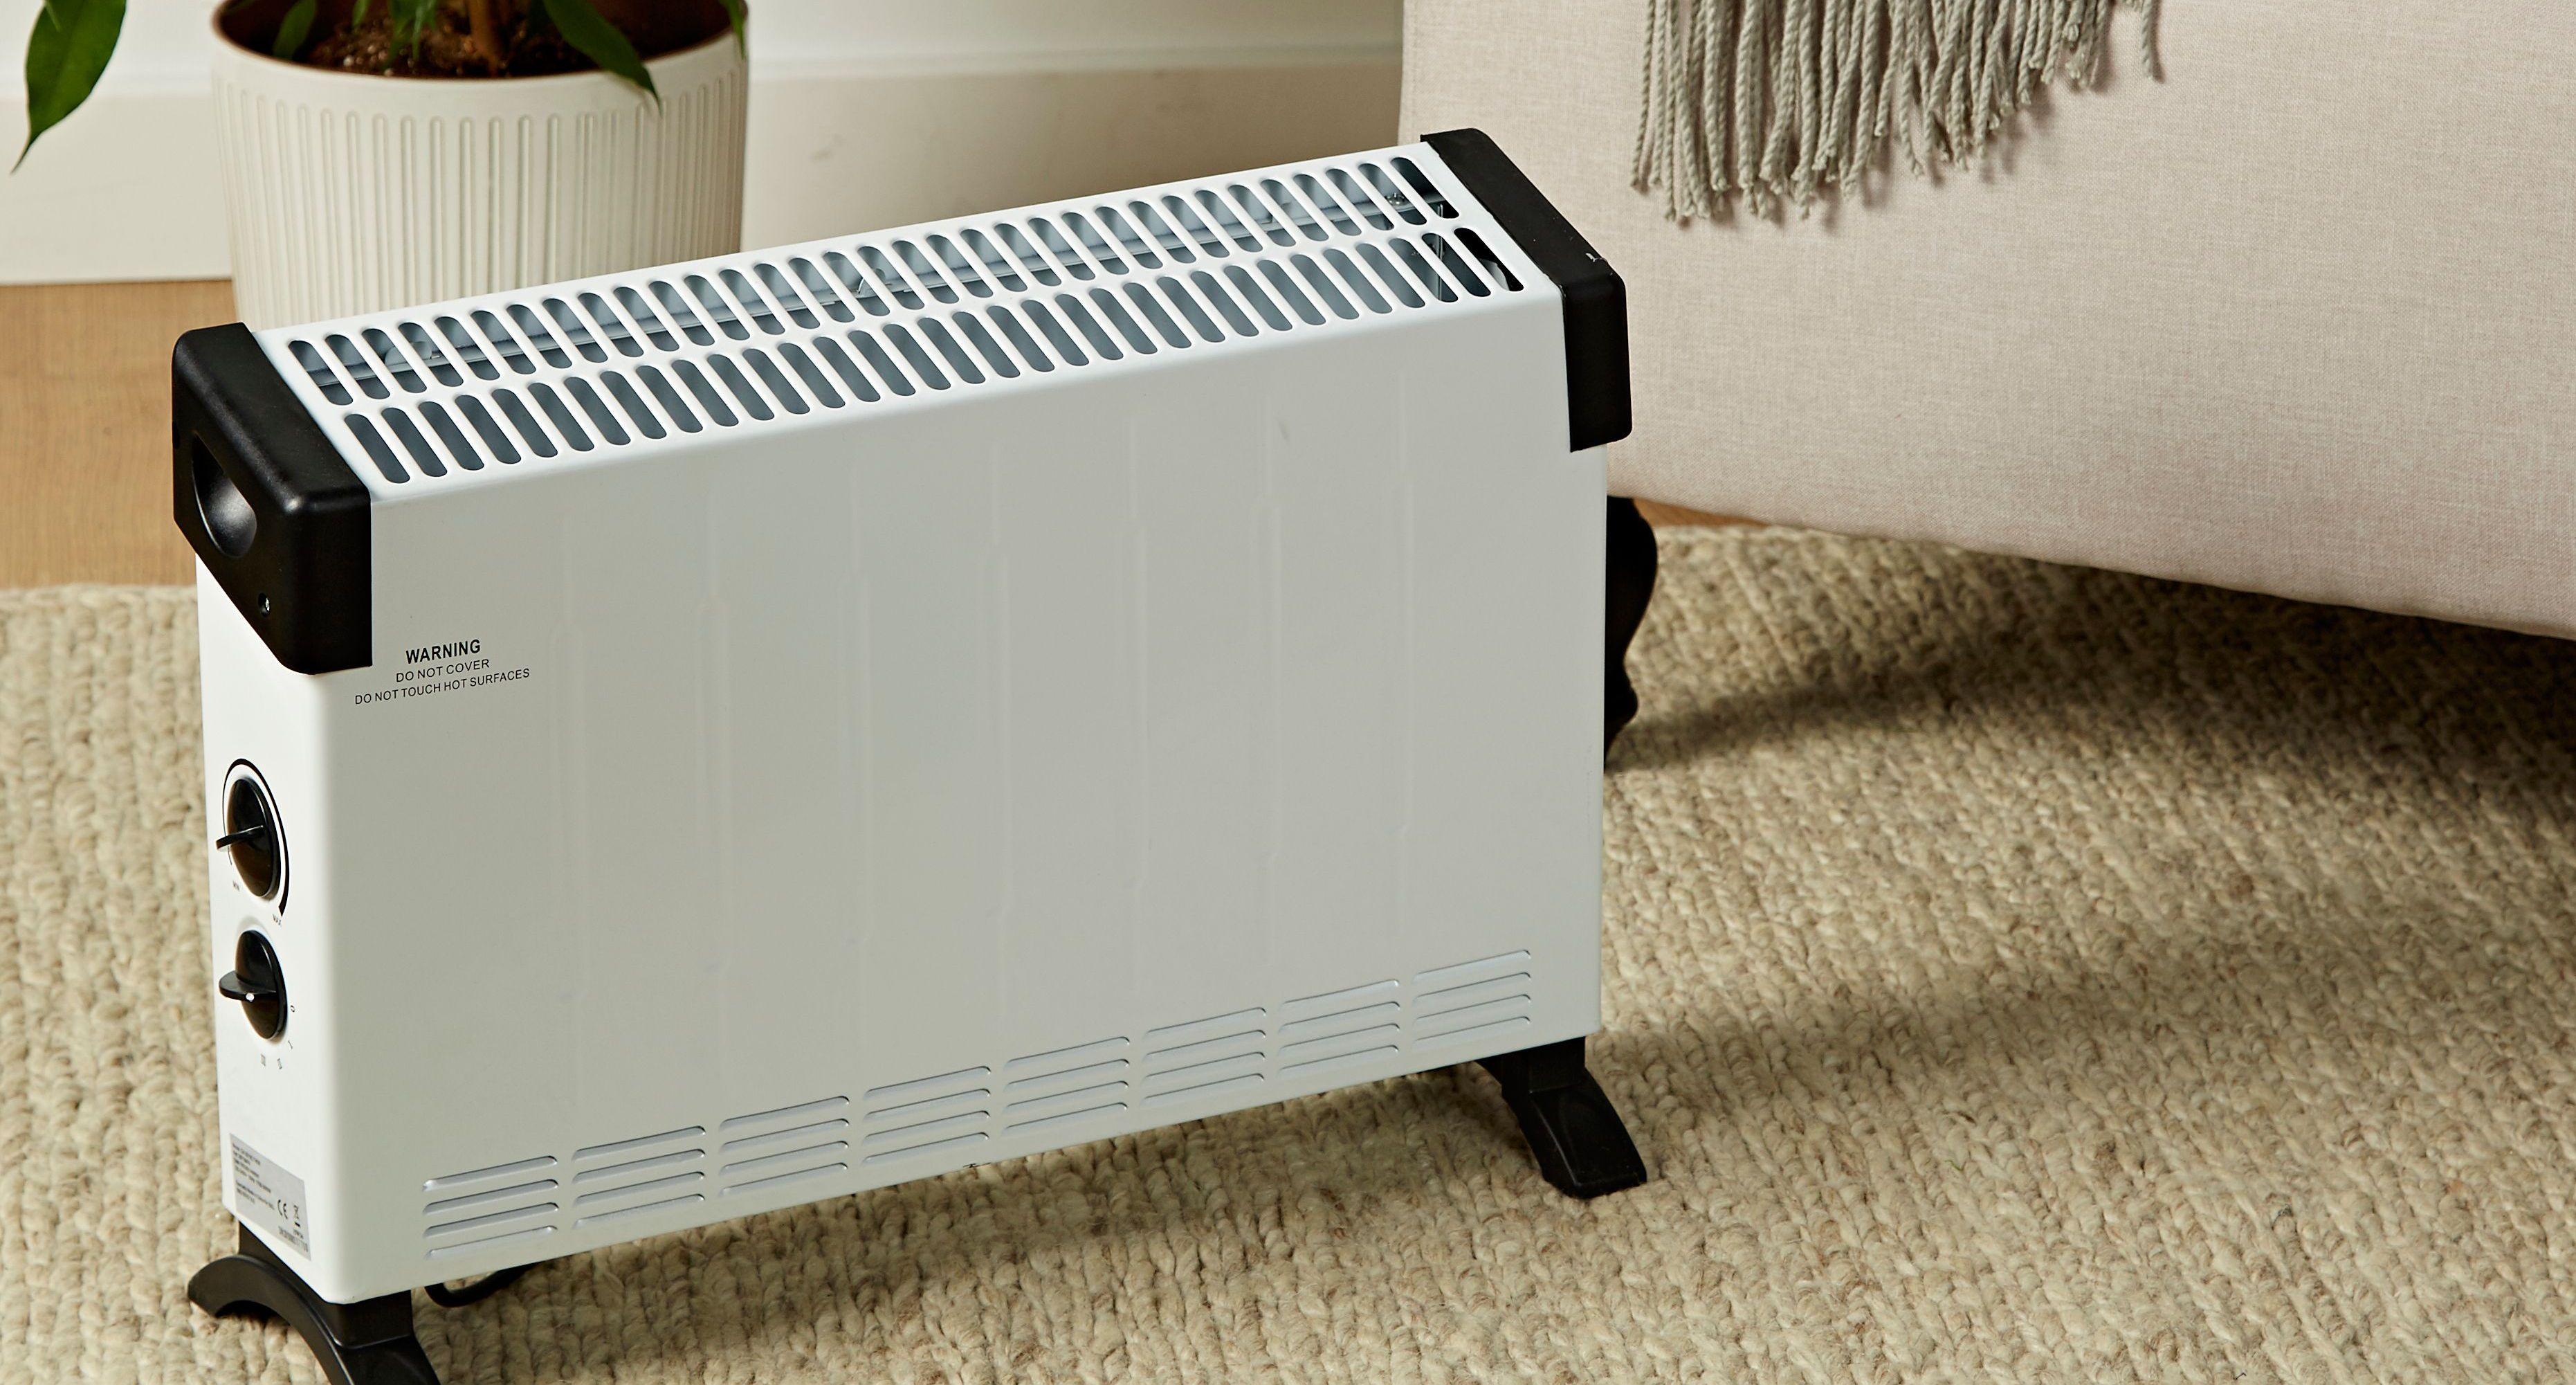 Electric heater buying guide